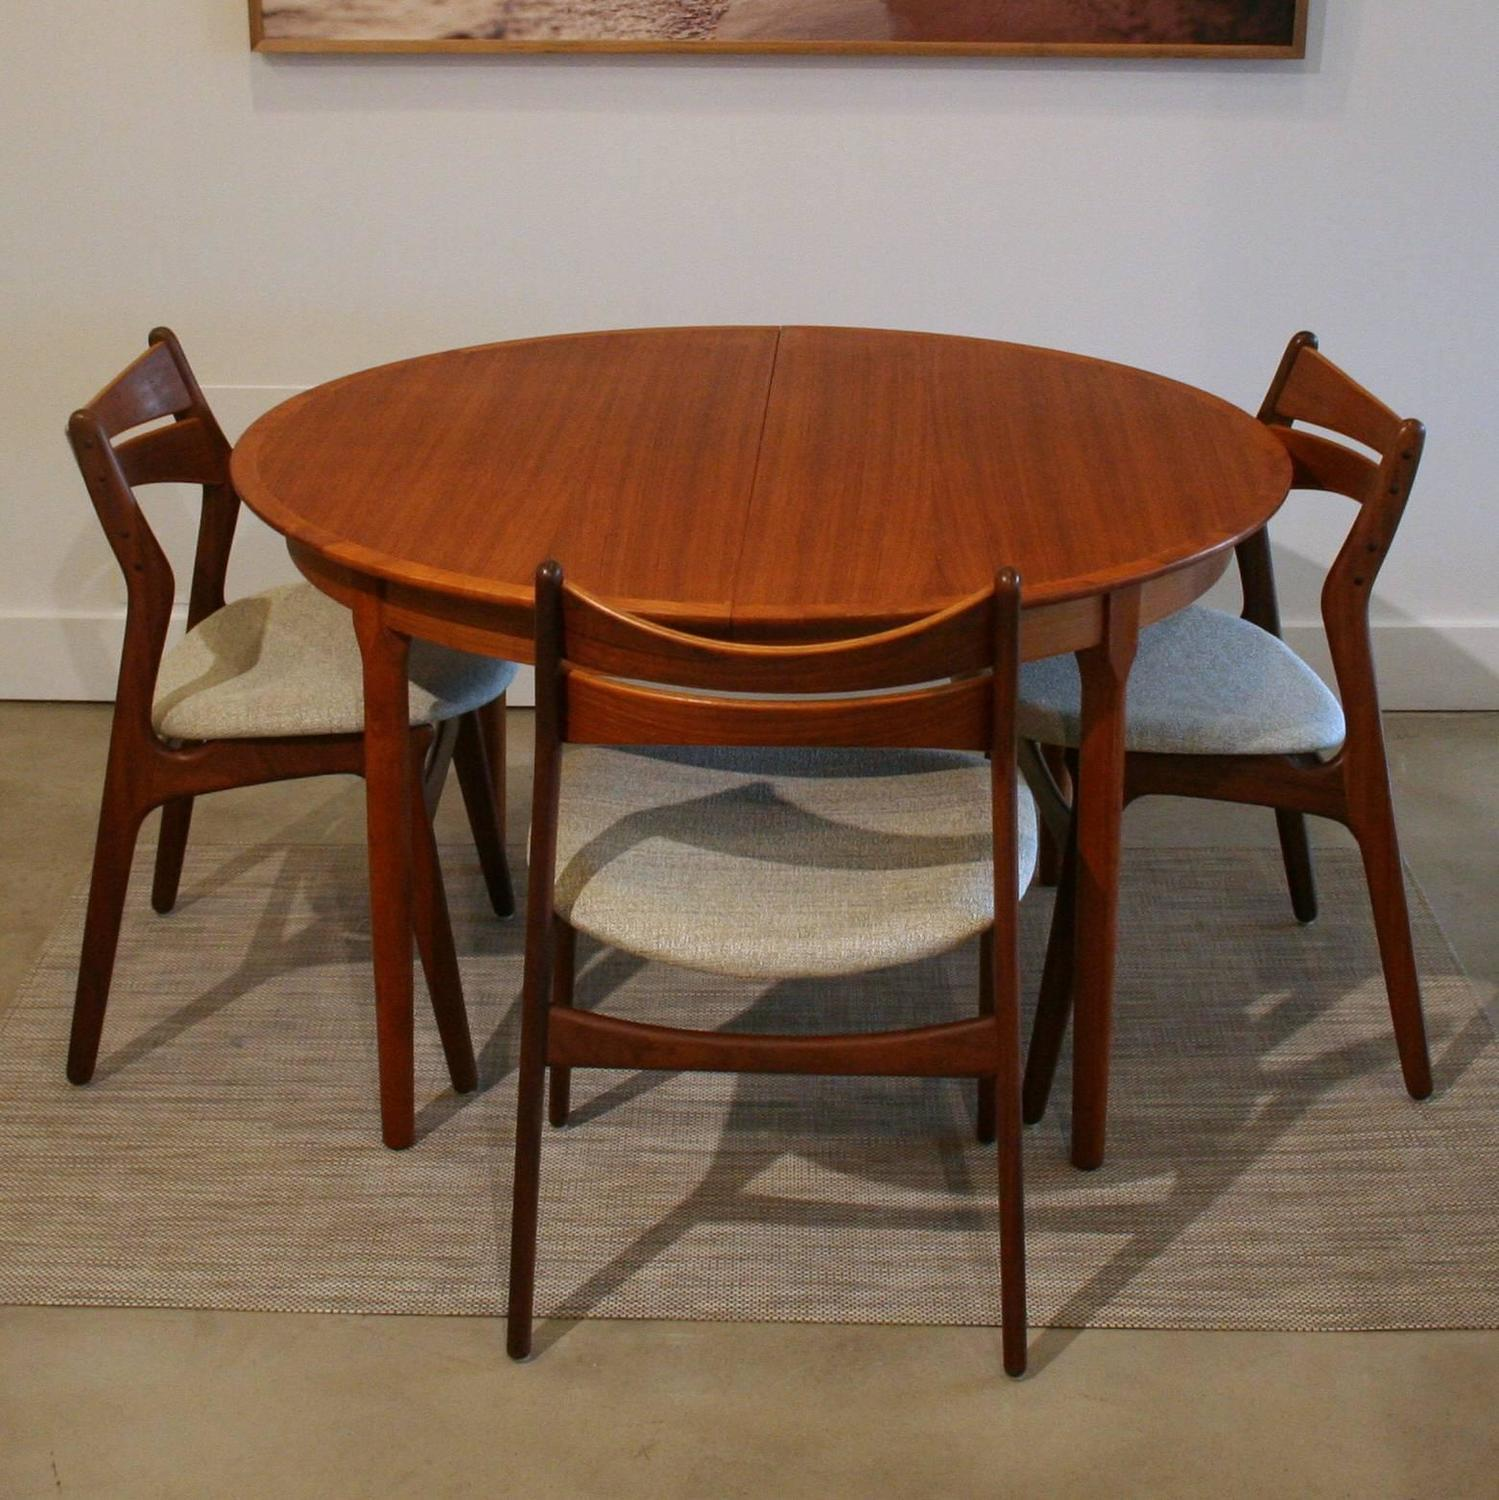 Vintage Danish Teak Round Dining Table at 1stdibs : IMG3568z from www.1stdibs.com size 1499 x 1500 jpeg 232kB